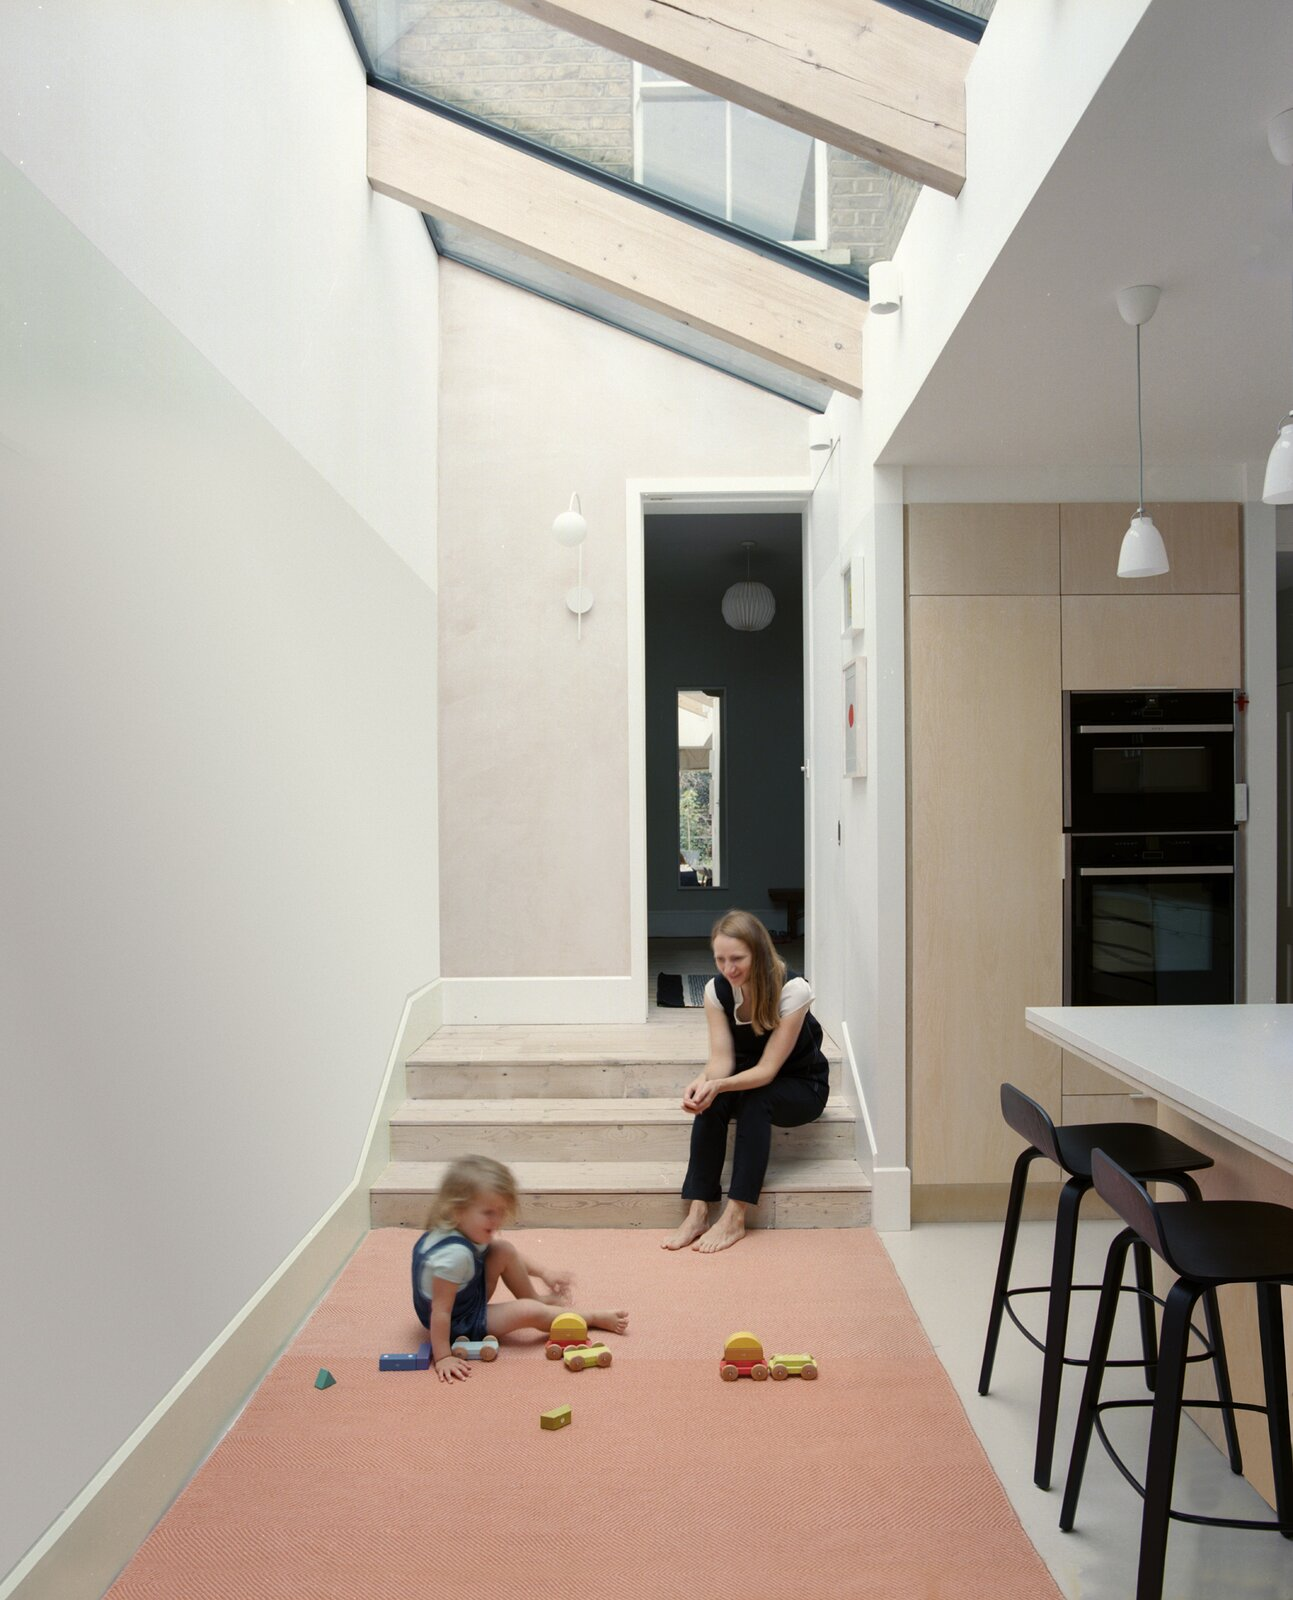 Play area of Zigzag Roof House by 4 S Architecture.